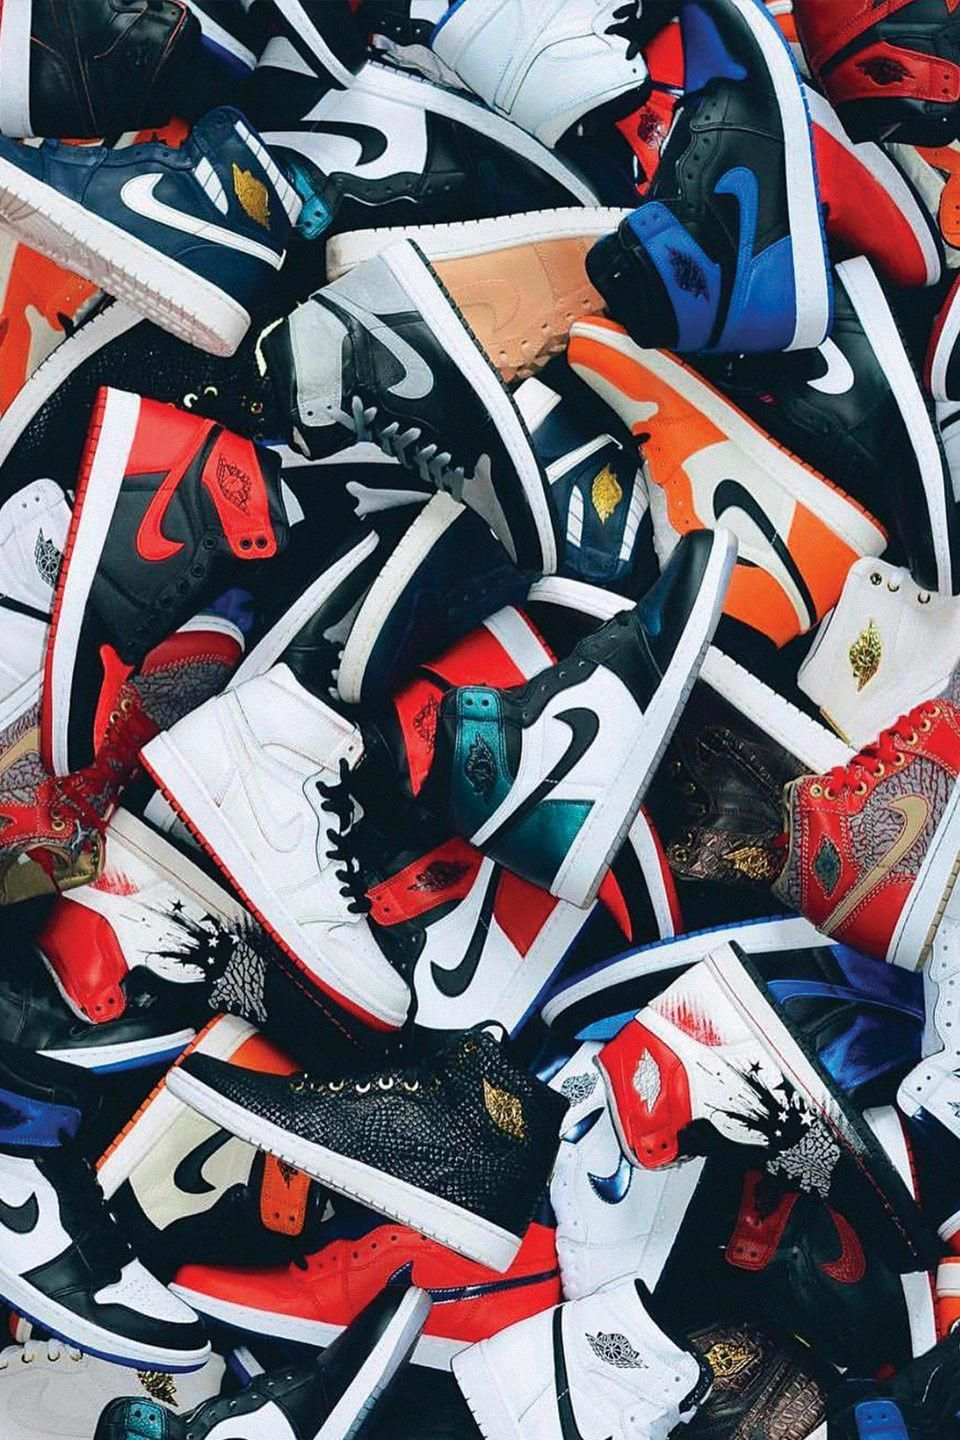 Pin By Andre Brown On Hypebeast Wallpaper Nike Wallpaper Jordan Shoes Wallpaper Air Jordans